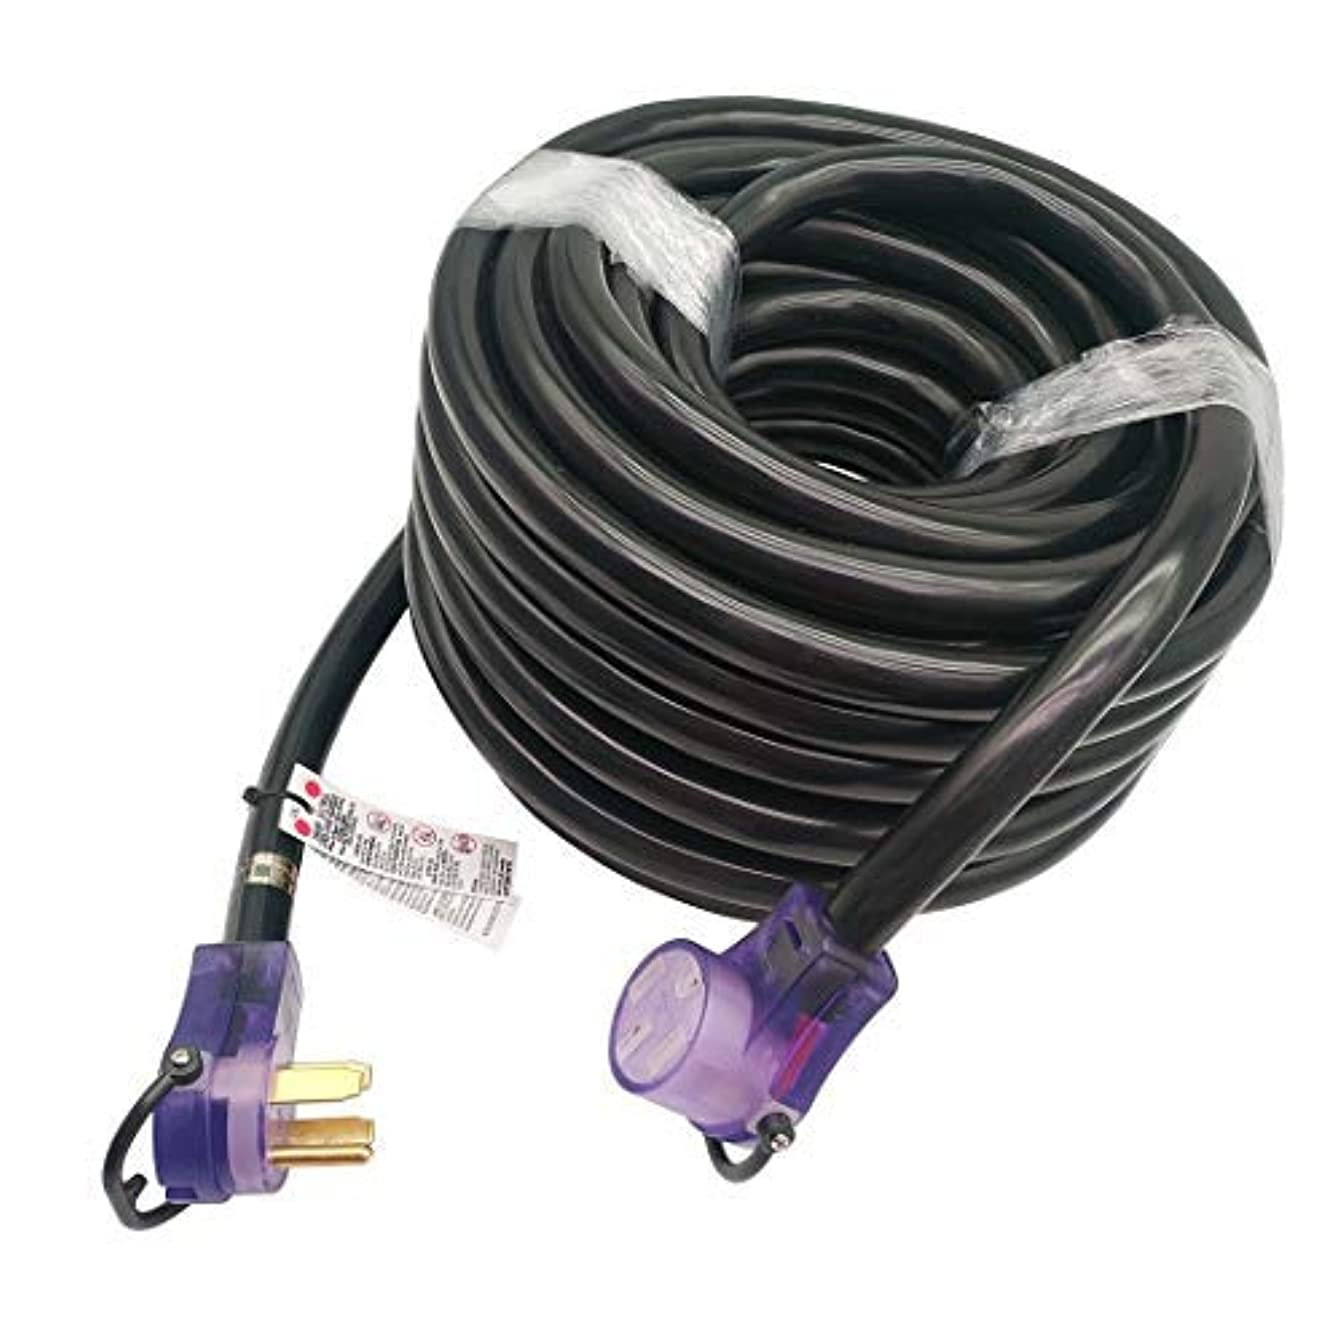 Parkworld 60110 RV 50amp Extension Cord 100FT NEMA 14-50, Plug and Receptacle with Lighted (100 Feet)